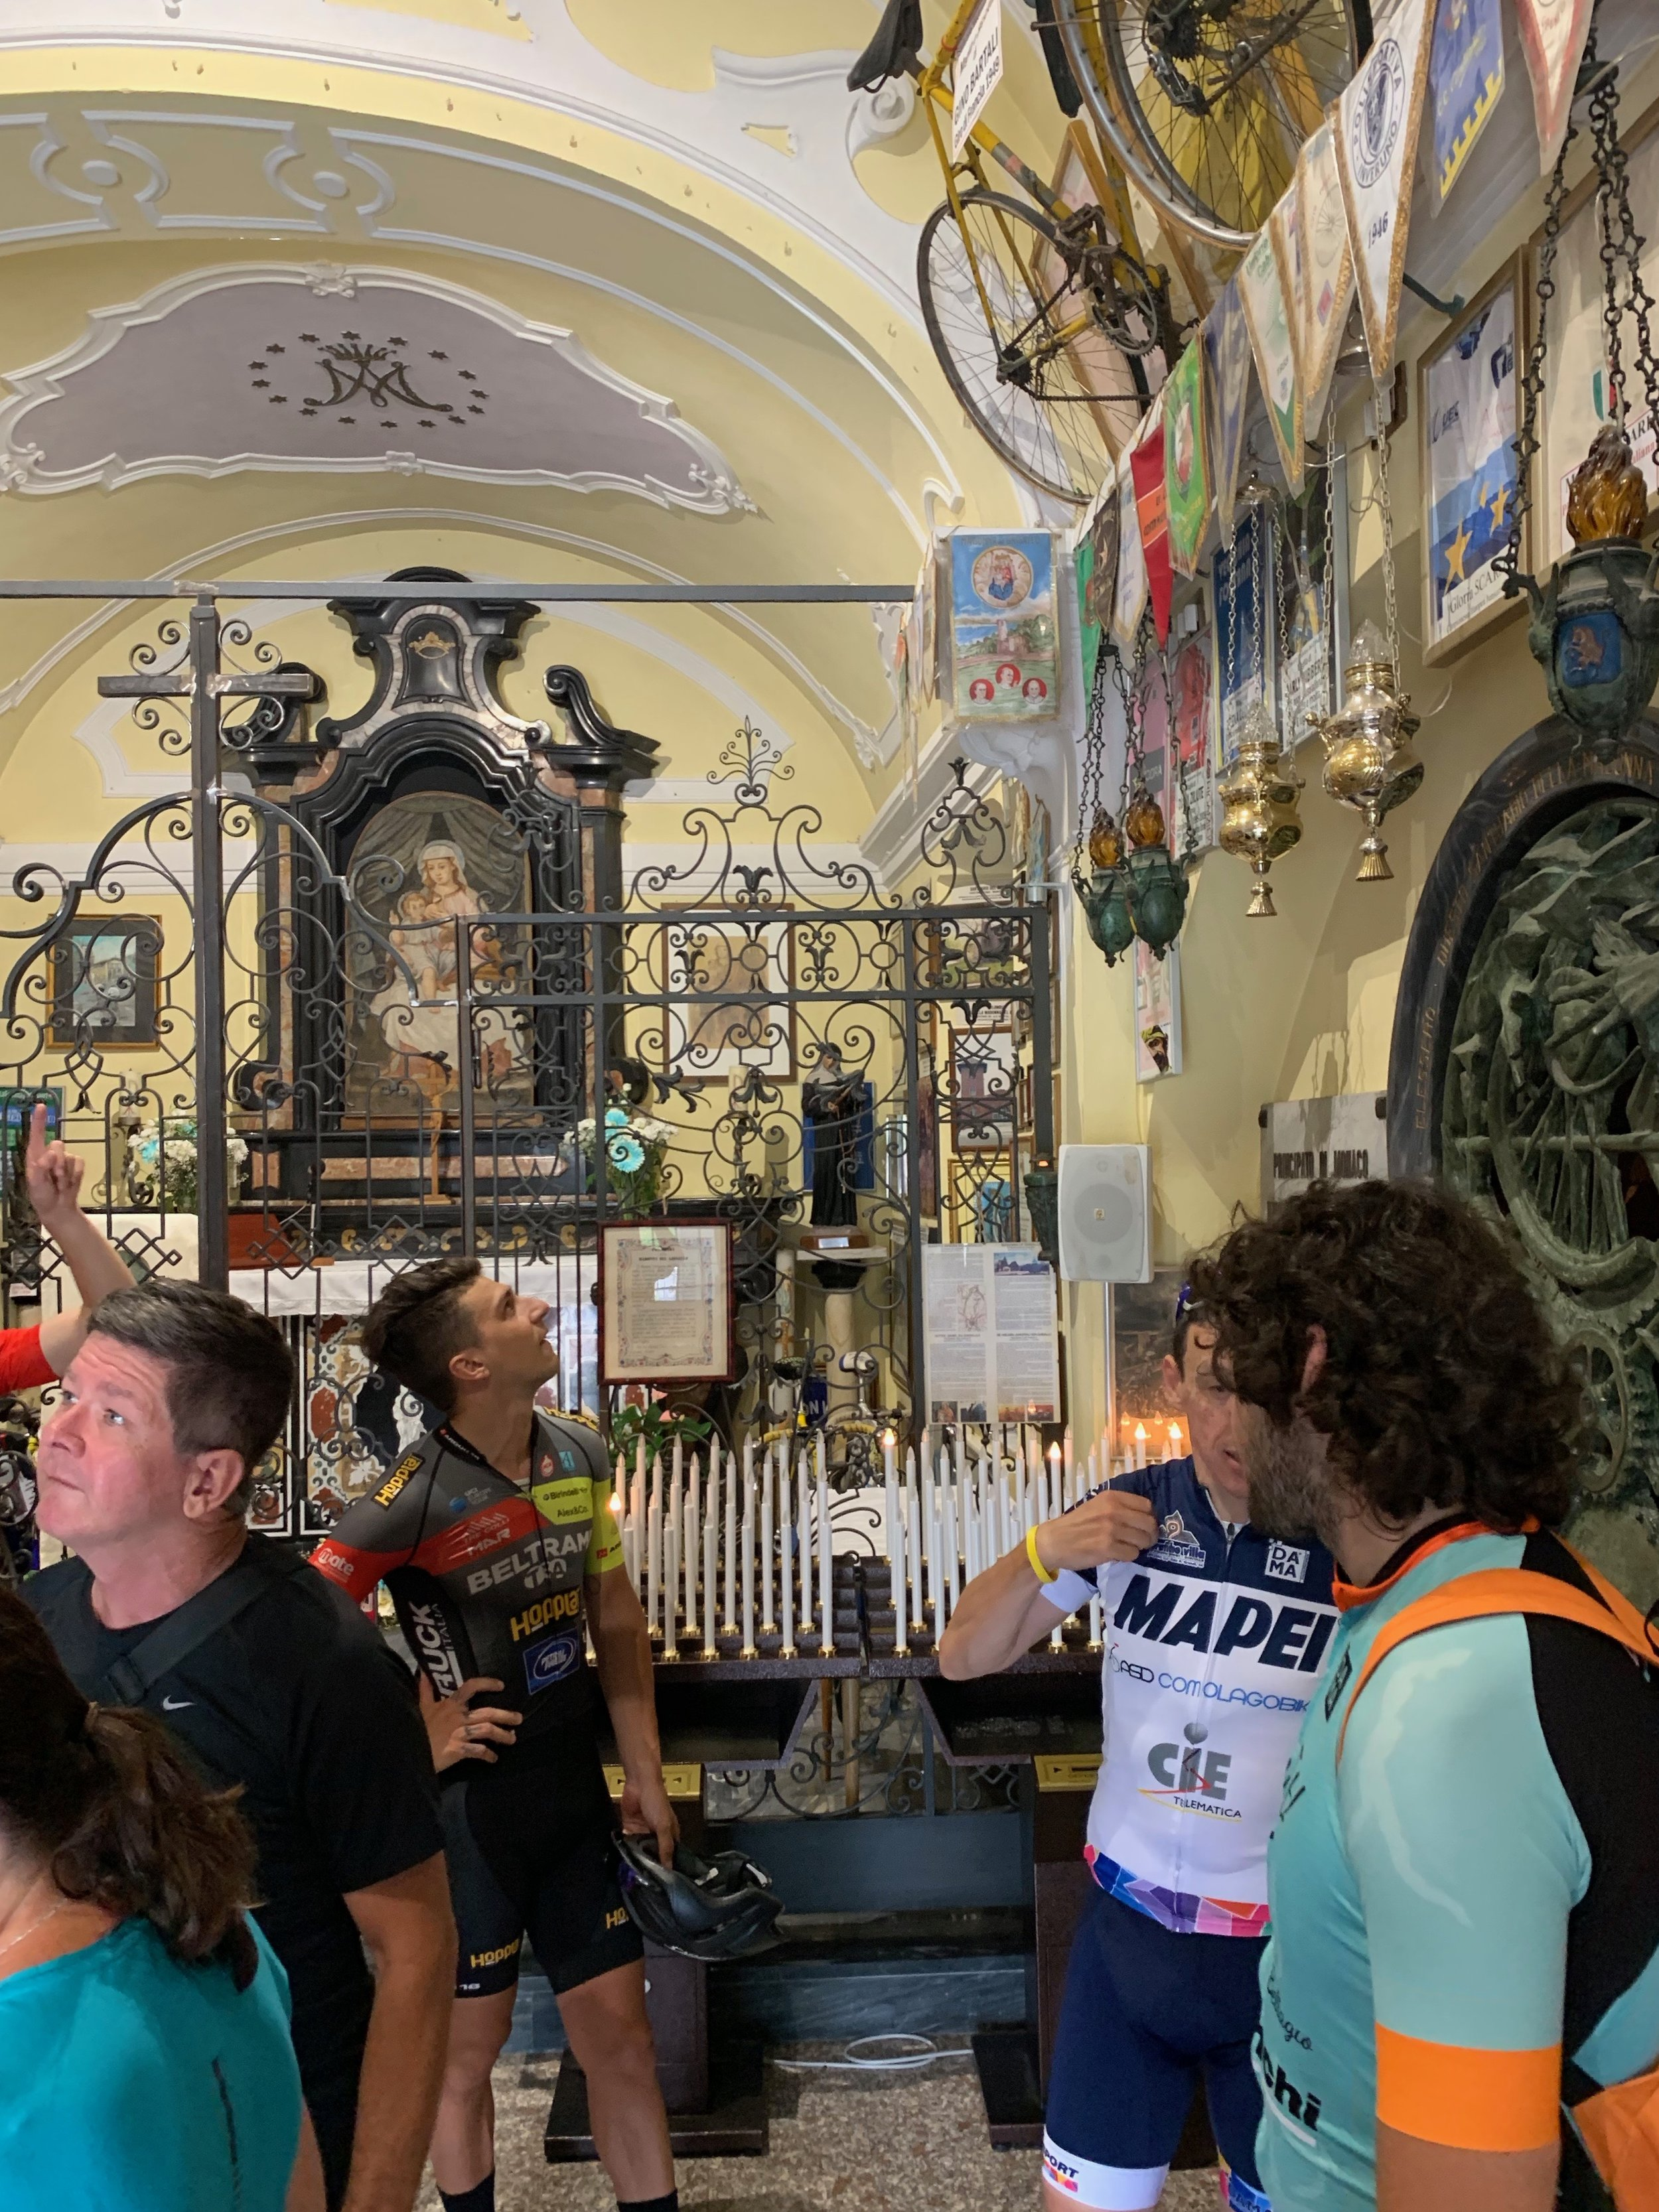 We biked to the Madonna del Ghisallo chapel/shrine. According to legend count Ghisallo was traveling when he was attacked by bandits. He saw an image of the Virgin Mary at a shrine, ran to it and was saved from the robbers. In later times the the area became part of the two largest Italian cycling races and became a natural stopping point for cyclists. An eternal flame burns here for cyclists who have died.   Inspiration take away  — Respect for the way devotion, tribute and remembering can come in many forms.